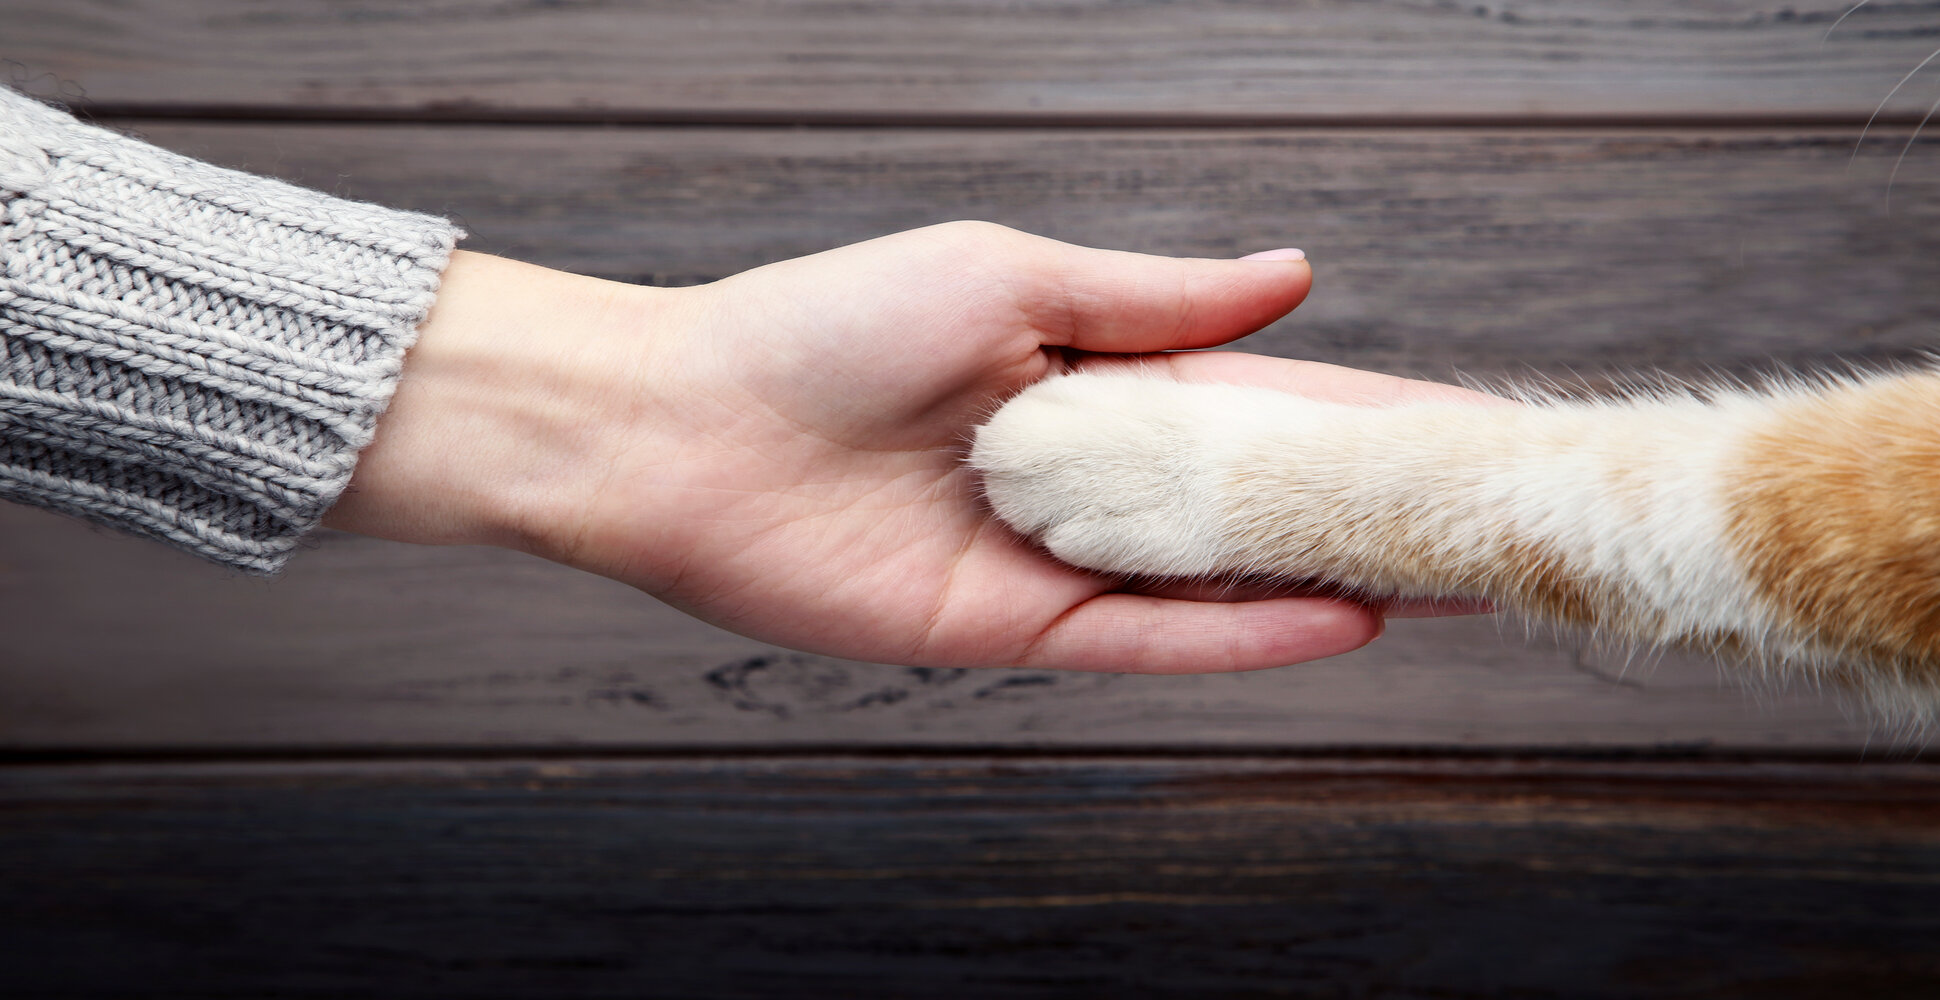 It's one of the most charming and endearing cat behaviors - you look over to find that your cat has gently stretched their paw towards you. Although it's adorable, cats can be hard to decipher, so you may be wondering why exactly your pet is doing this. Here are some of the top reasons why your cat might be reaching their paw out to you. 1. Your cat is indulging in a nice, deep stretch. Cats love to stretch, and you've probably noticed them stretching before as you move throughout the house. When they reach their paw out to you, they might just be in need of a comfy stretch. Stretching is a very relaxed behavior, so take it as a compliment - your cat is nice and calm around you. 2. Your cat wants to be cuddled. This is possibly the most flattering explanation for why your pet might be reaching their hand out. Cats have a strong bond with their owners, so reaching out their paw might be an indication that they want some physical affection. 3. Your cat is hungry. Cats also like to reach their paws out when they need something as a way of getting your attention. One common explanation for this is that they need food. If your cat typically gets hungry at a certain time and they start reaching their paw out, check their food bowl. 4. It's playtime! If your cat has a lot of energy and they reach their paw out to you, it could be an indication that they want to play. Cats need external stimulation from humans, so regular playtime is very important. Keep some fun toys around the house to facilitate easy play sessions. 5. Your cat is trying to get your attention in some other way. If you've ruled out a desire for cuddles, food, or playtime, your cat's outstretched paw may be a request for attention in some other form. For example, they may want you to clean their litter box, open a door, or look out the window. 6. Your cat wants to show affection. When your cat stretches their paw out, they could actually be mimicking you and want to give you a 'pet'. This can be a very swee